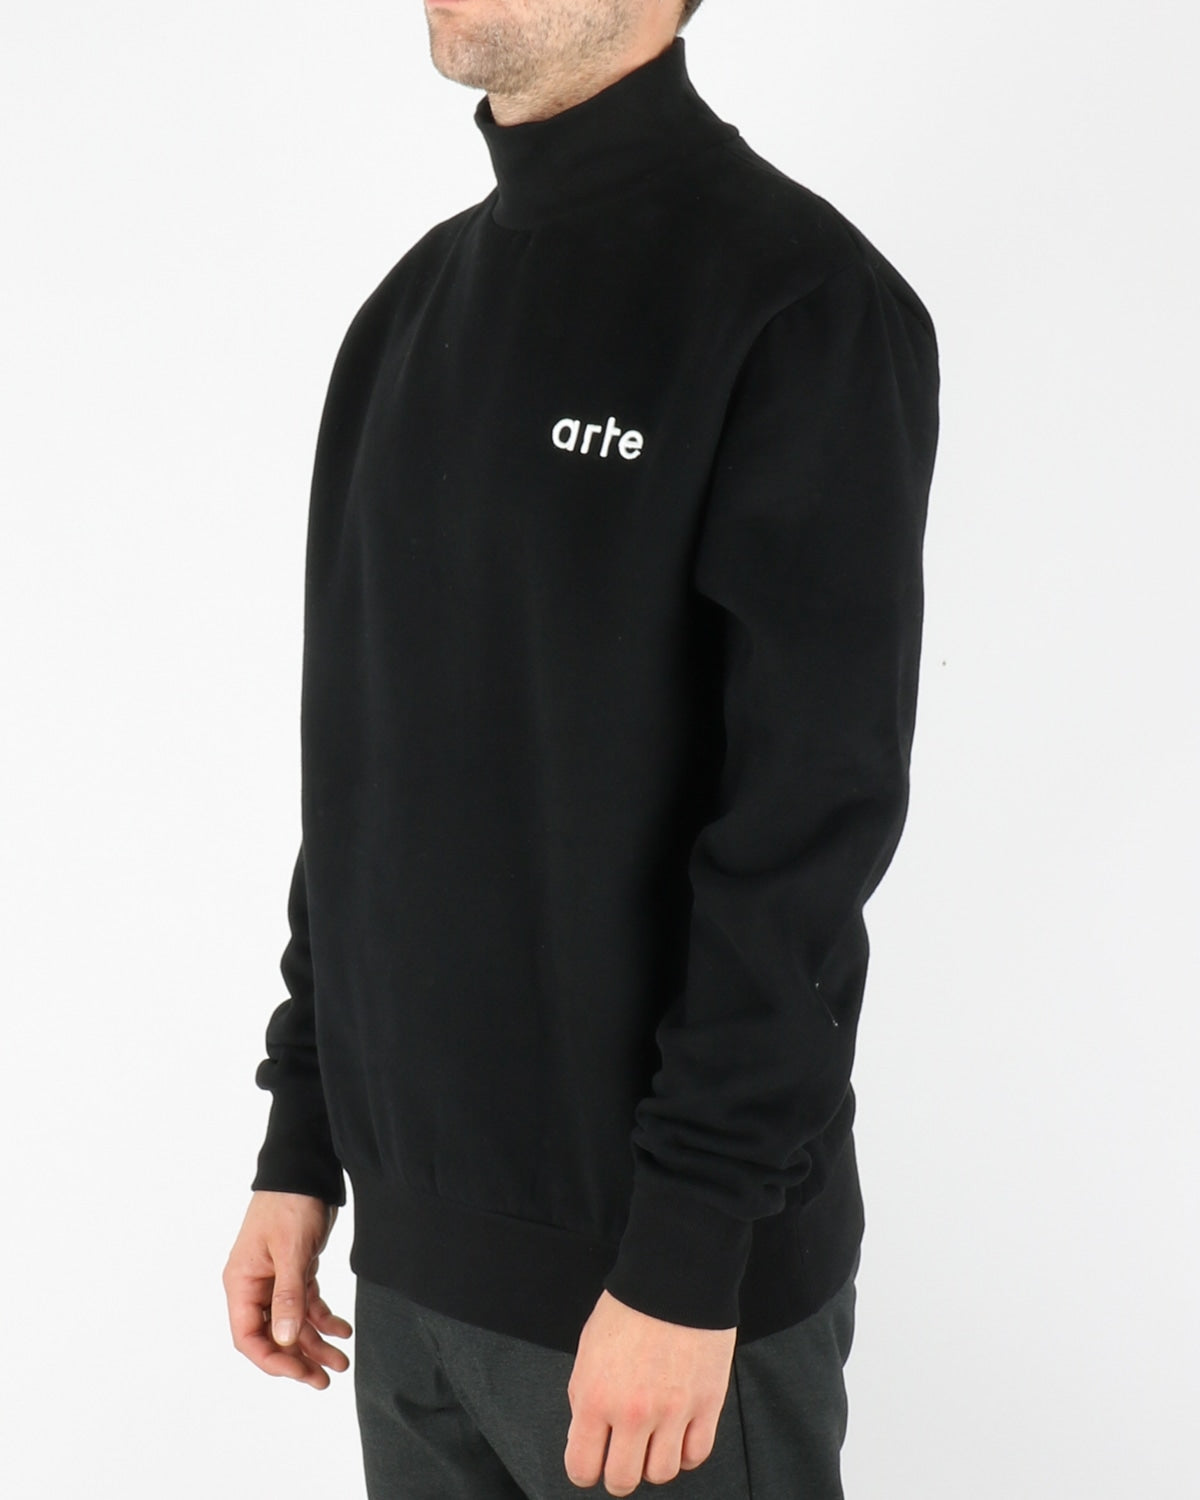 arte_carter turtleneck_black_2_3